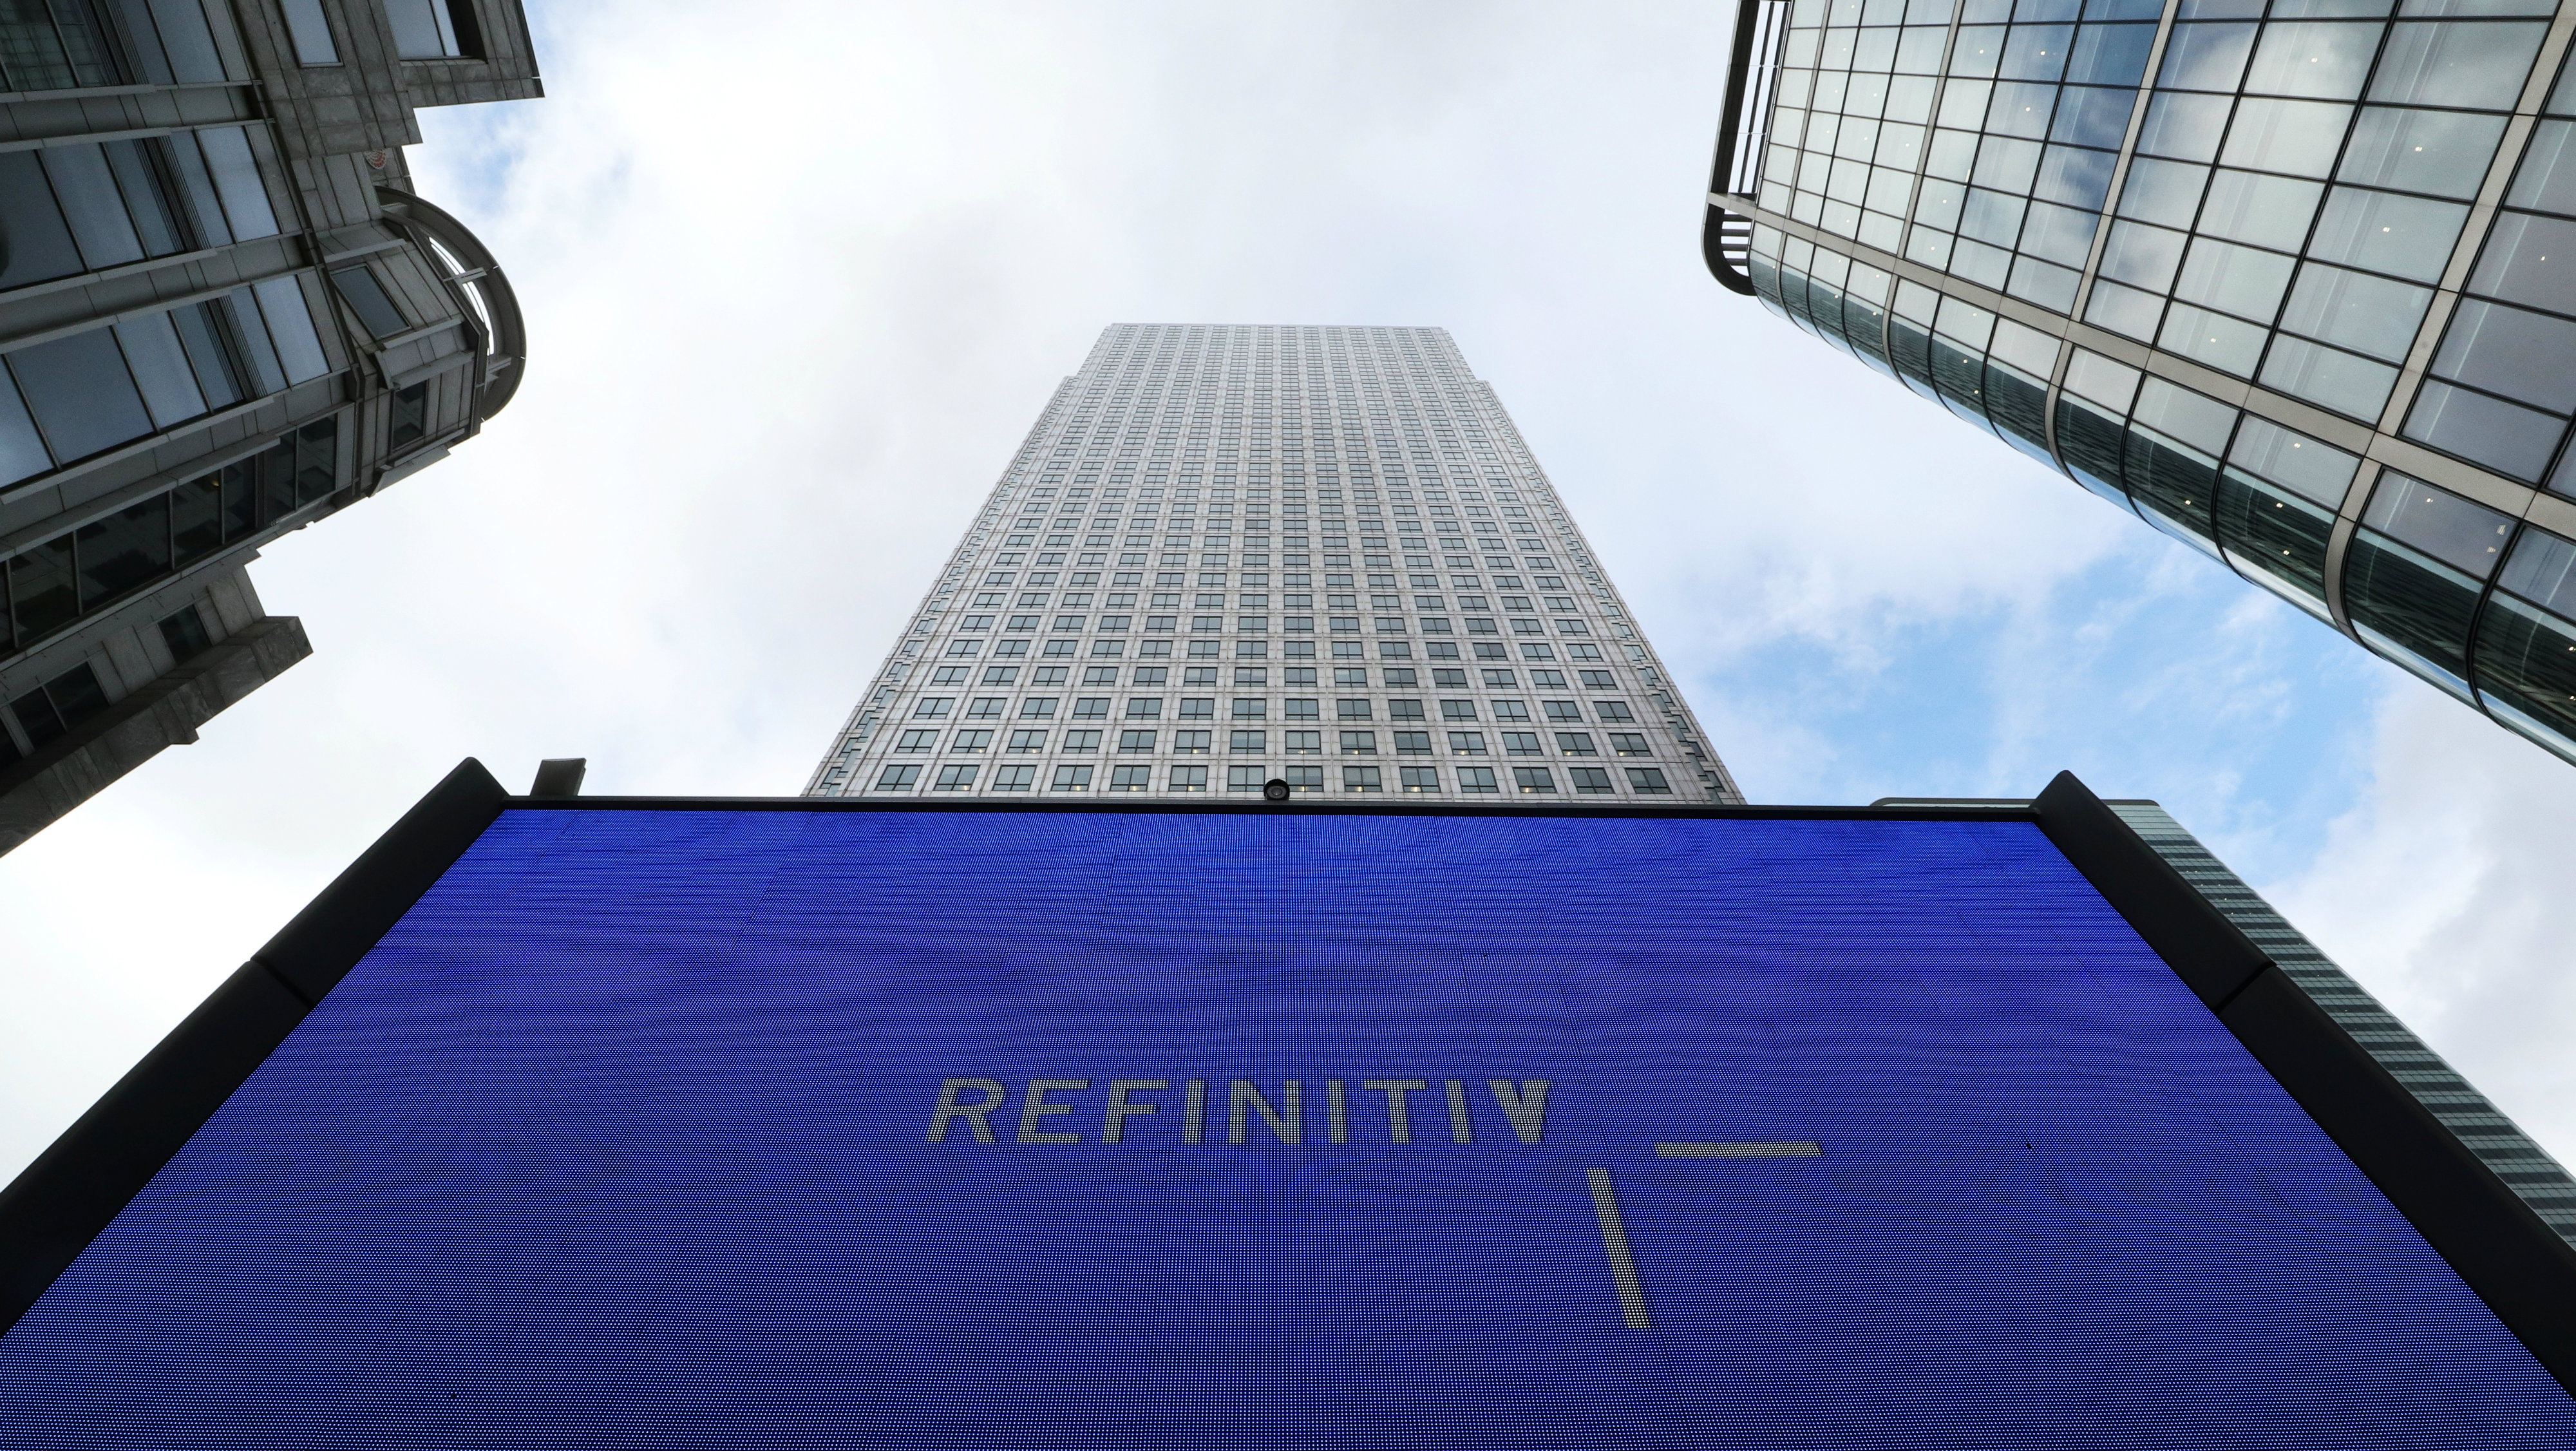 An advertisement for Refinitiv is seen on a screen in London's Canary Wharf financial centre, London, Britain,